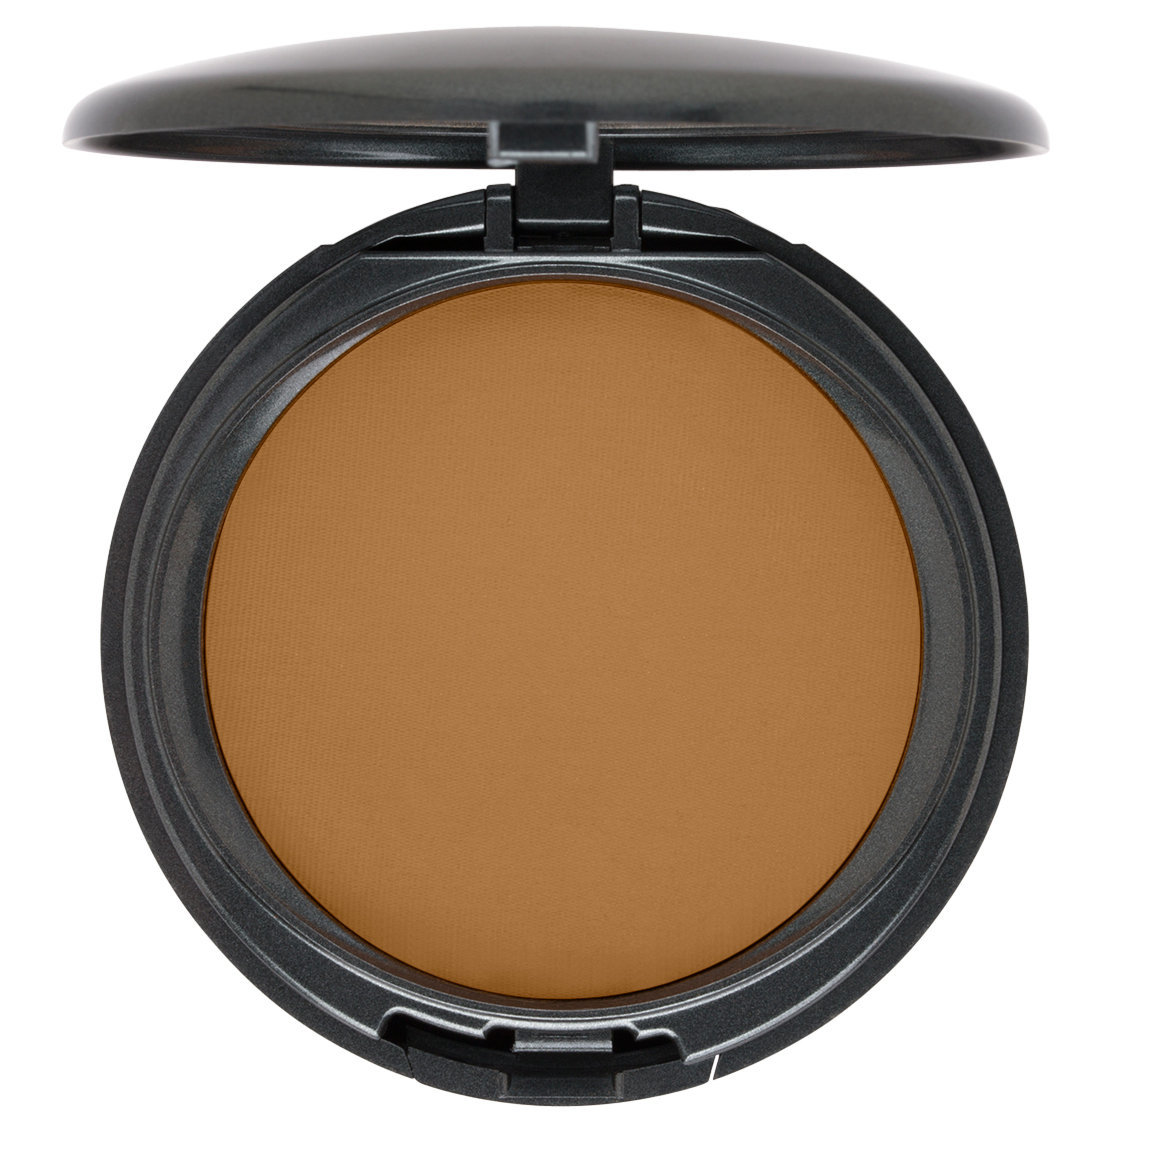 COVER | FX Pressed Mineral Foundation G70 product swatch.